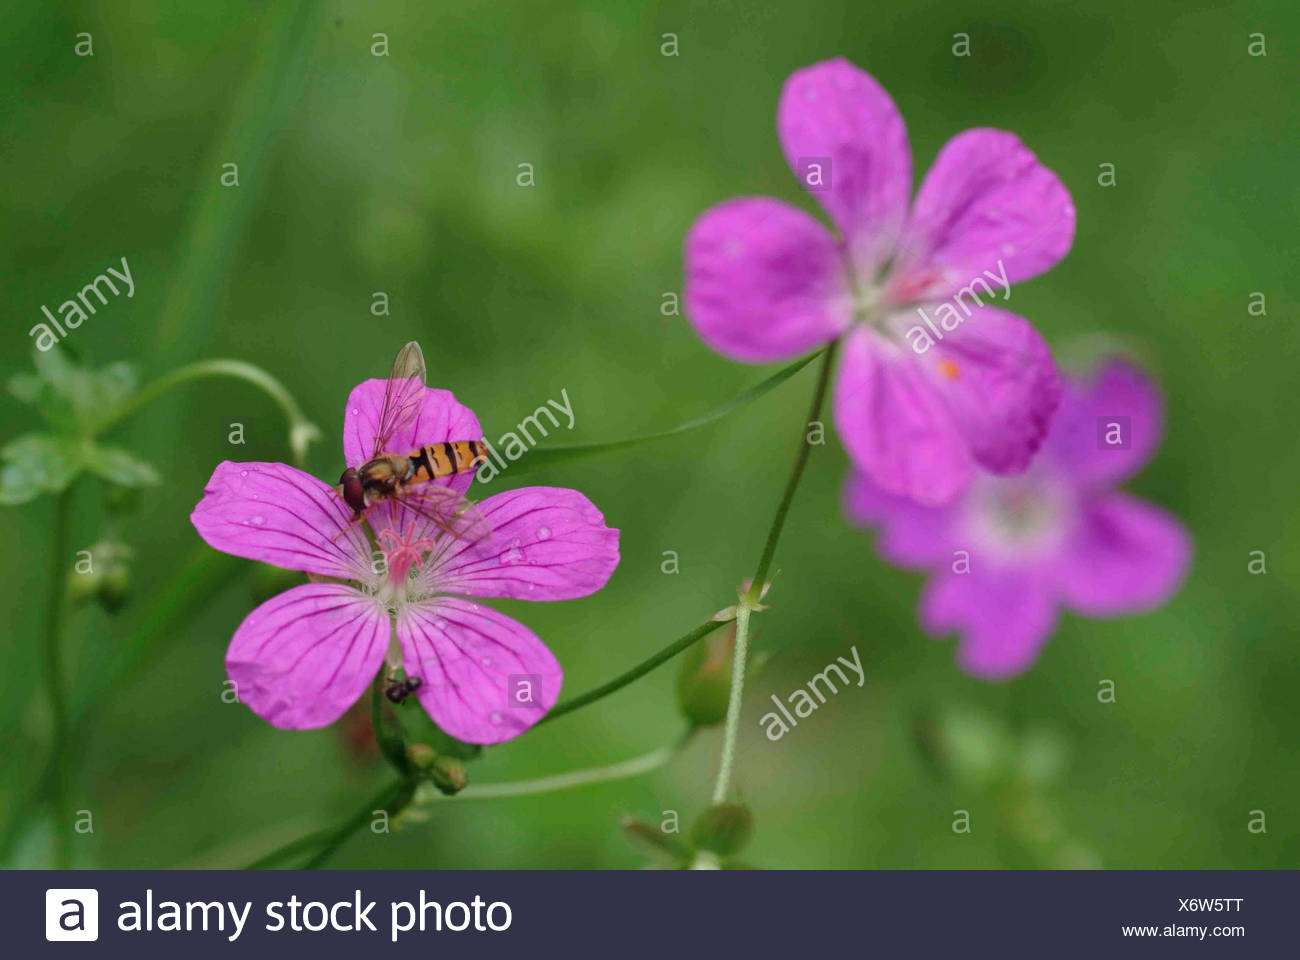 marsh cranesbill (Geranium palustre), flowers with hoverfly, Germany Stock Photo